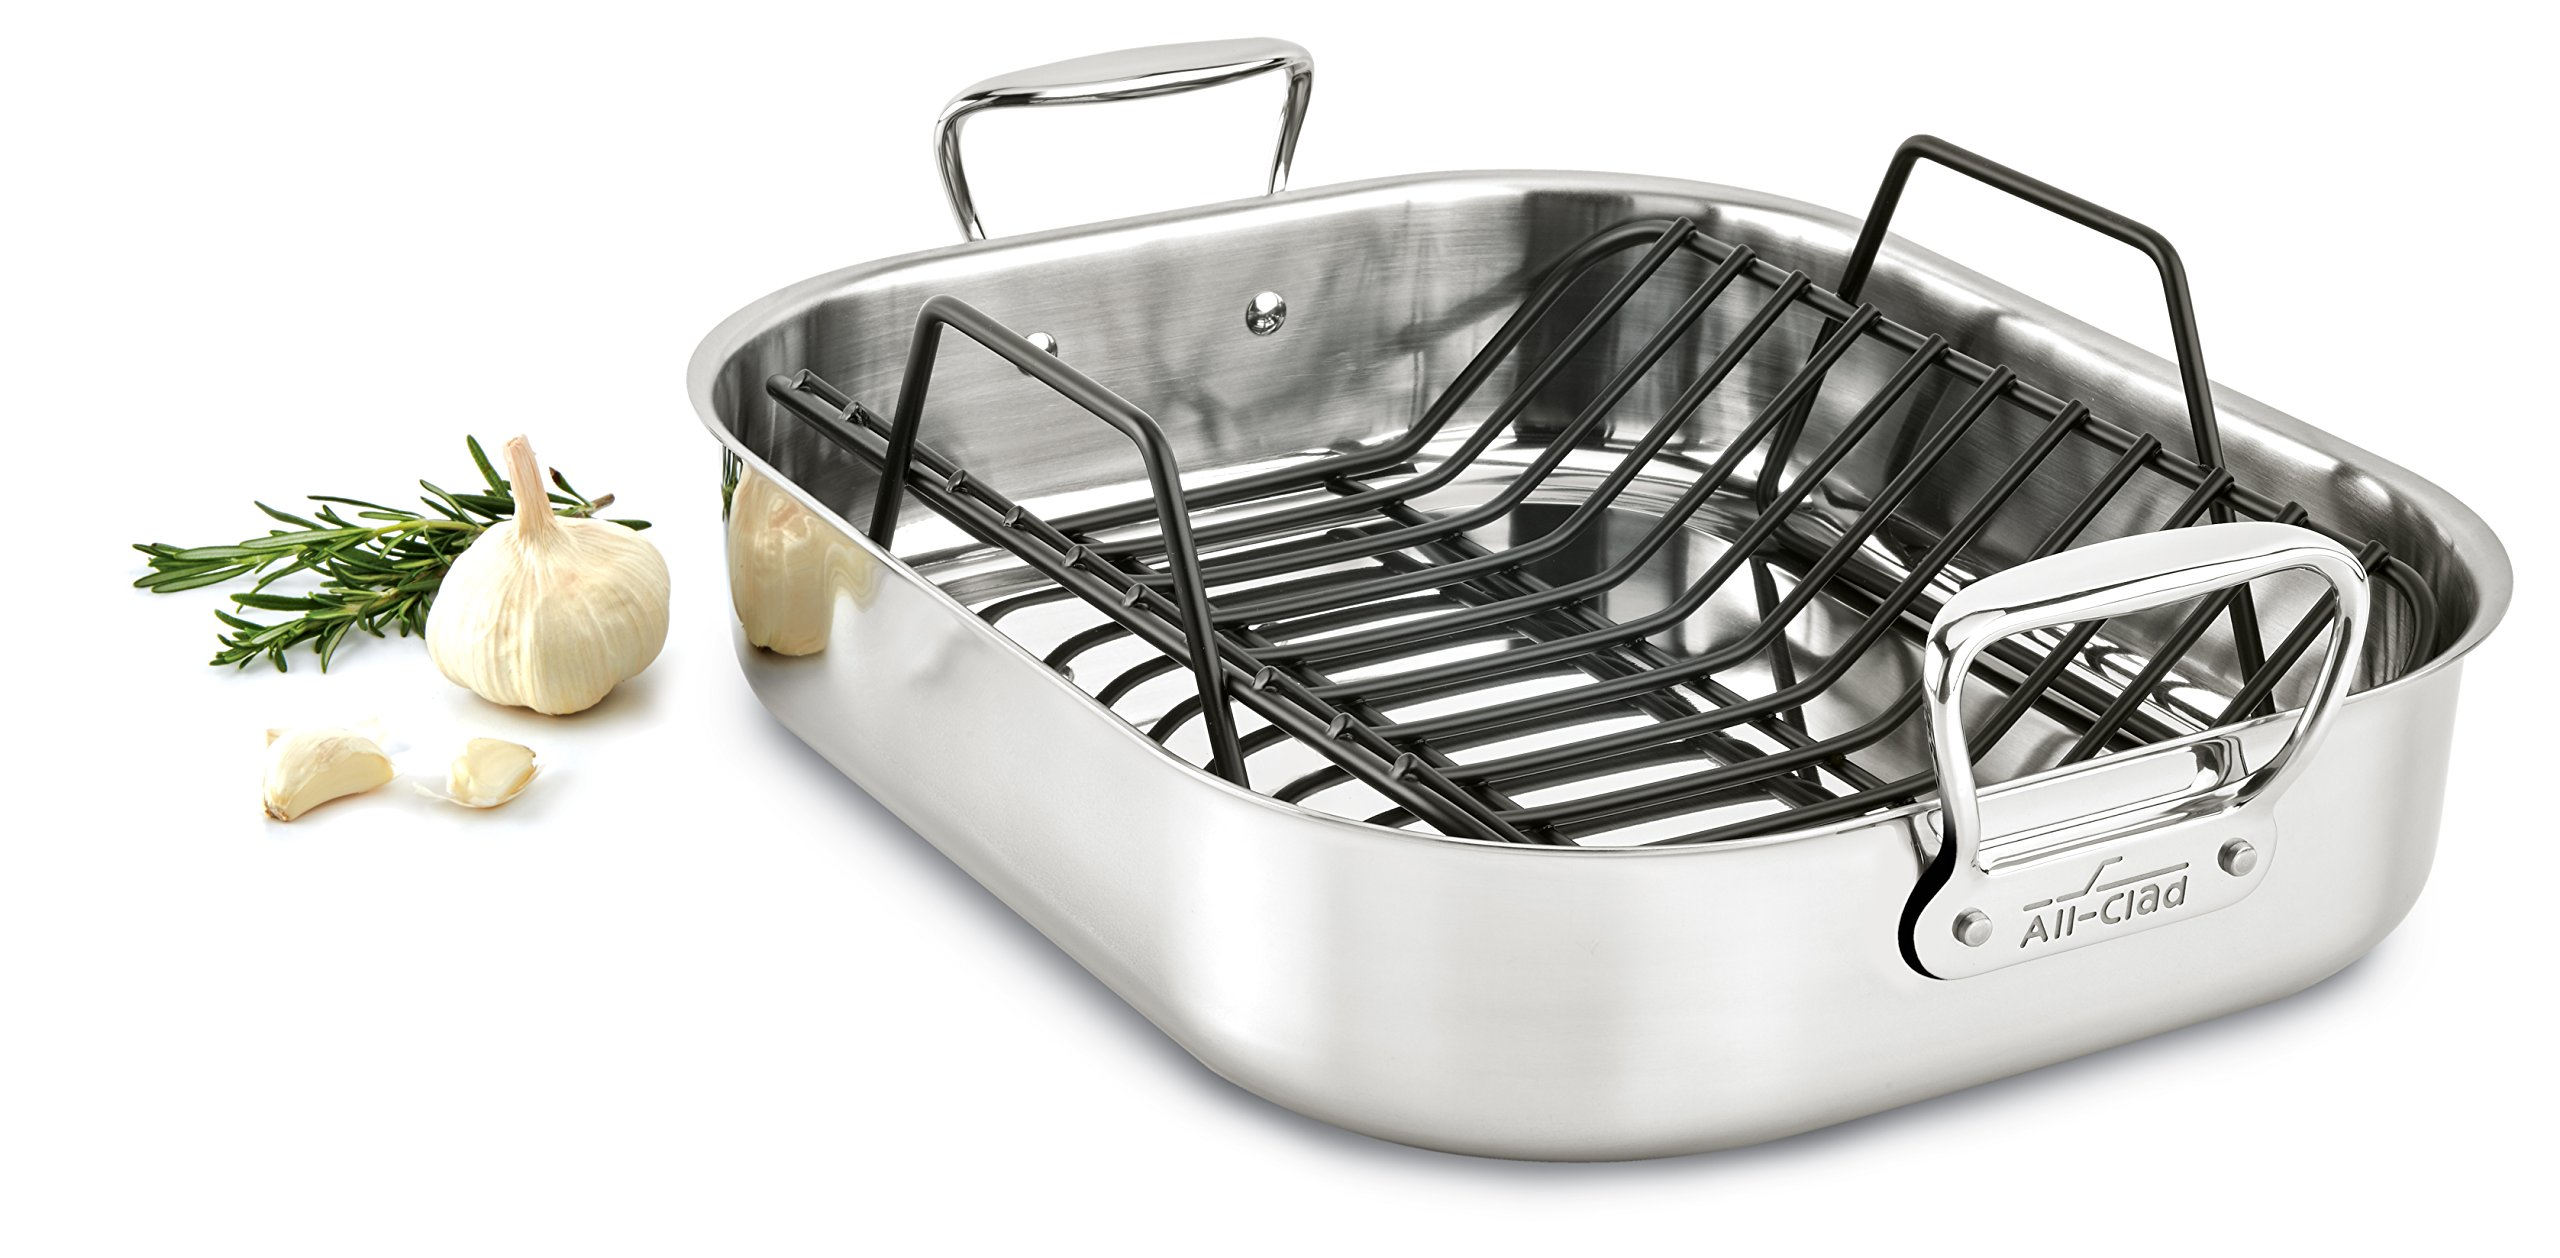 All-Clad E752C264 Stainless Steel Dishwasher Safe Large 13-Inch x 16-Inch Roaster with Nonstick Rack Cookware, 16-Inch, Silver by All-Clad (Image #2)